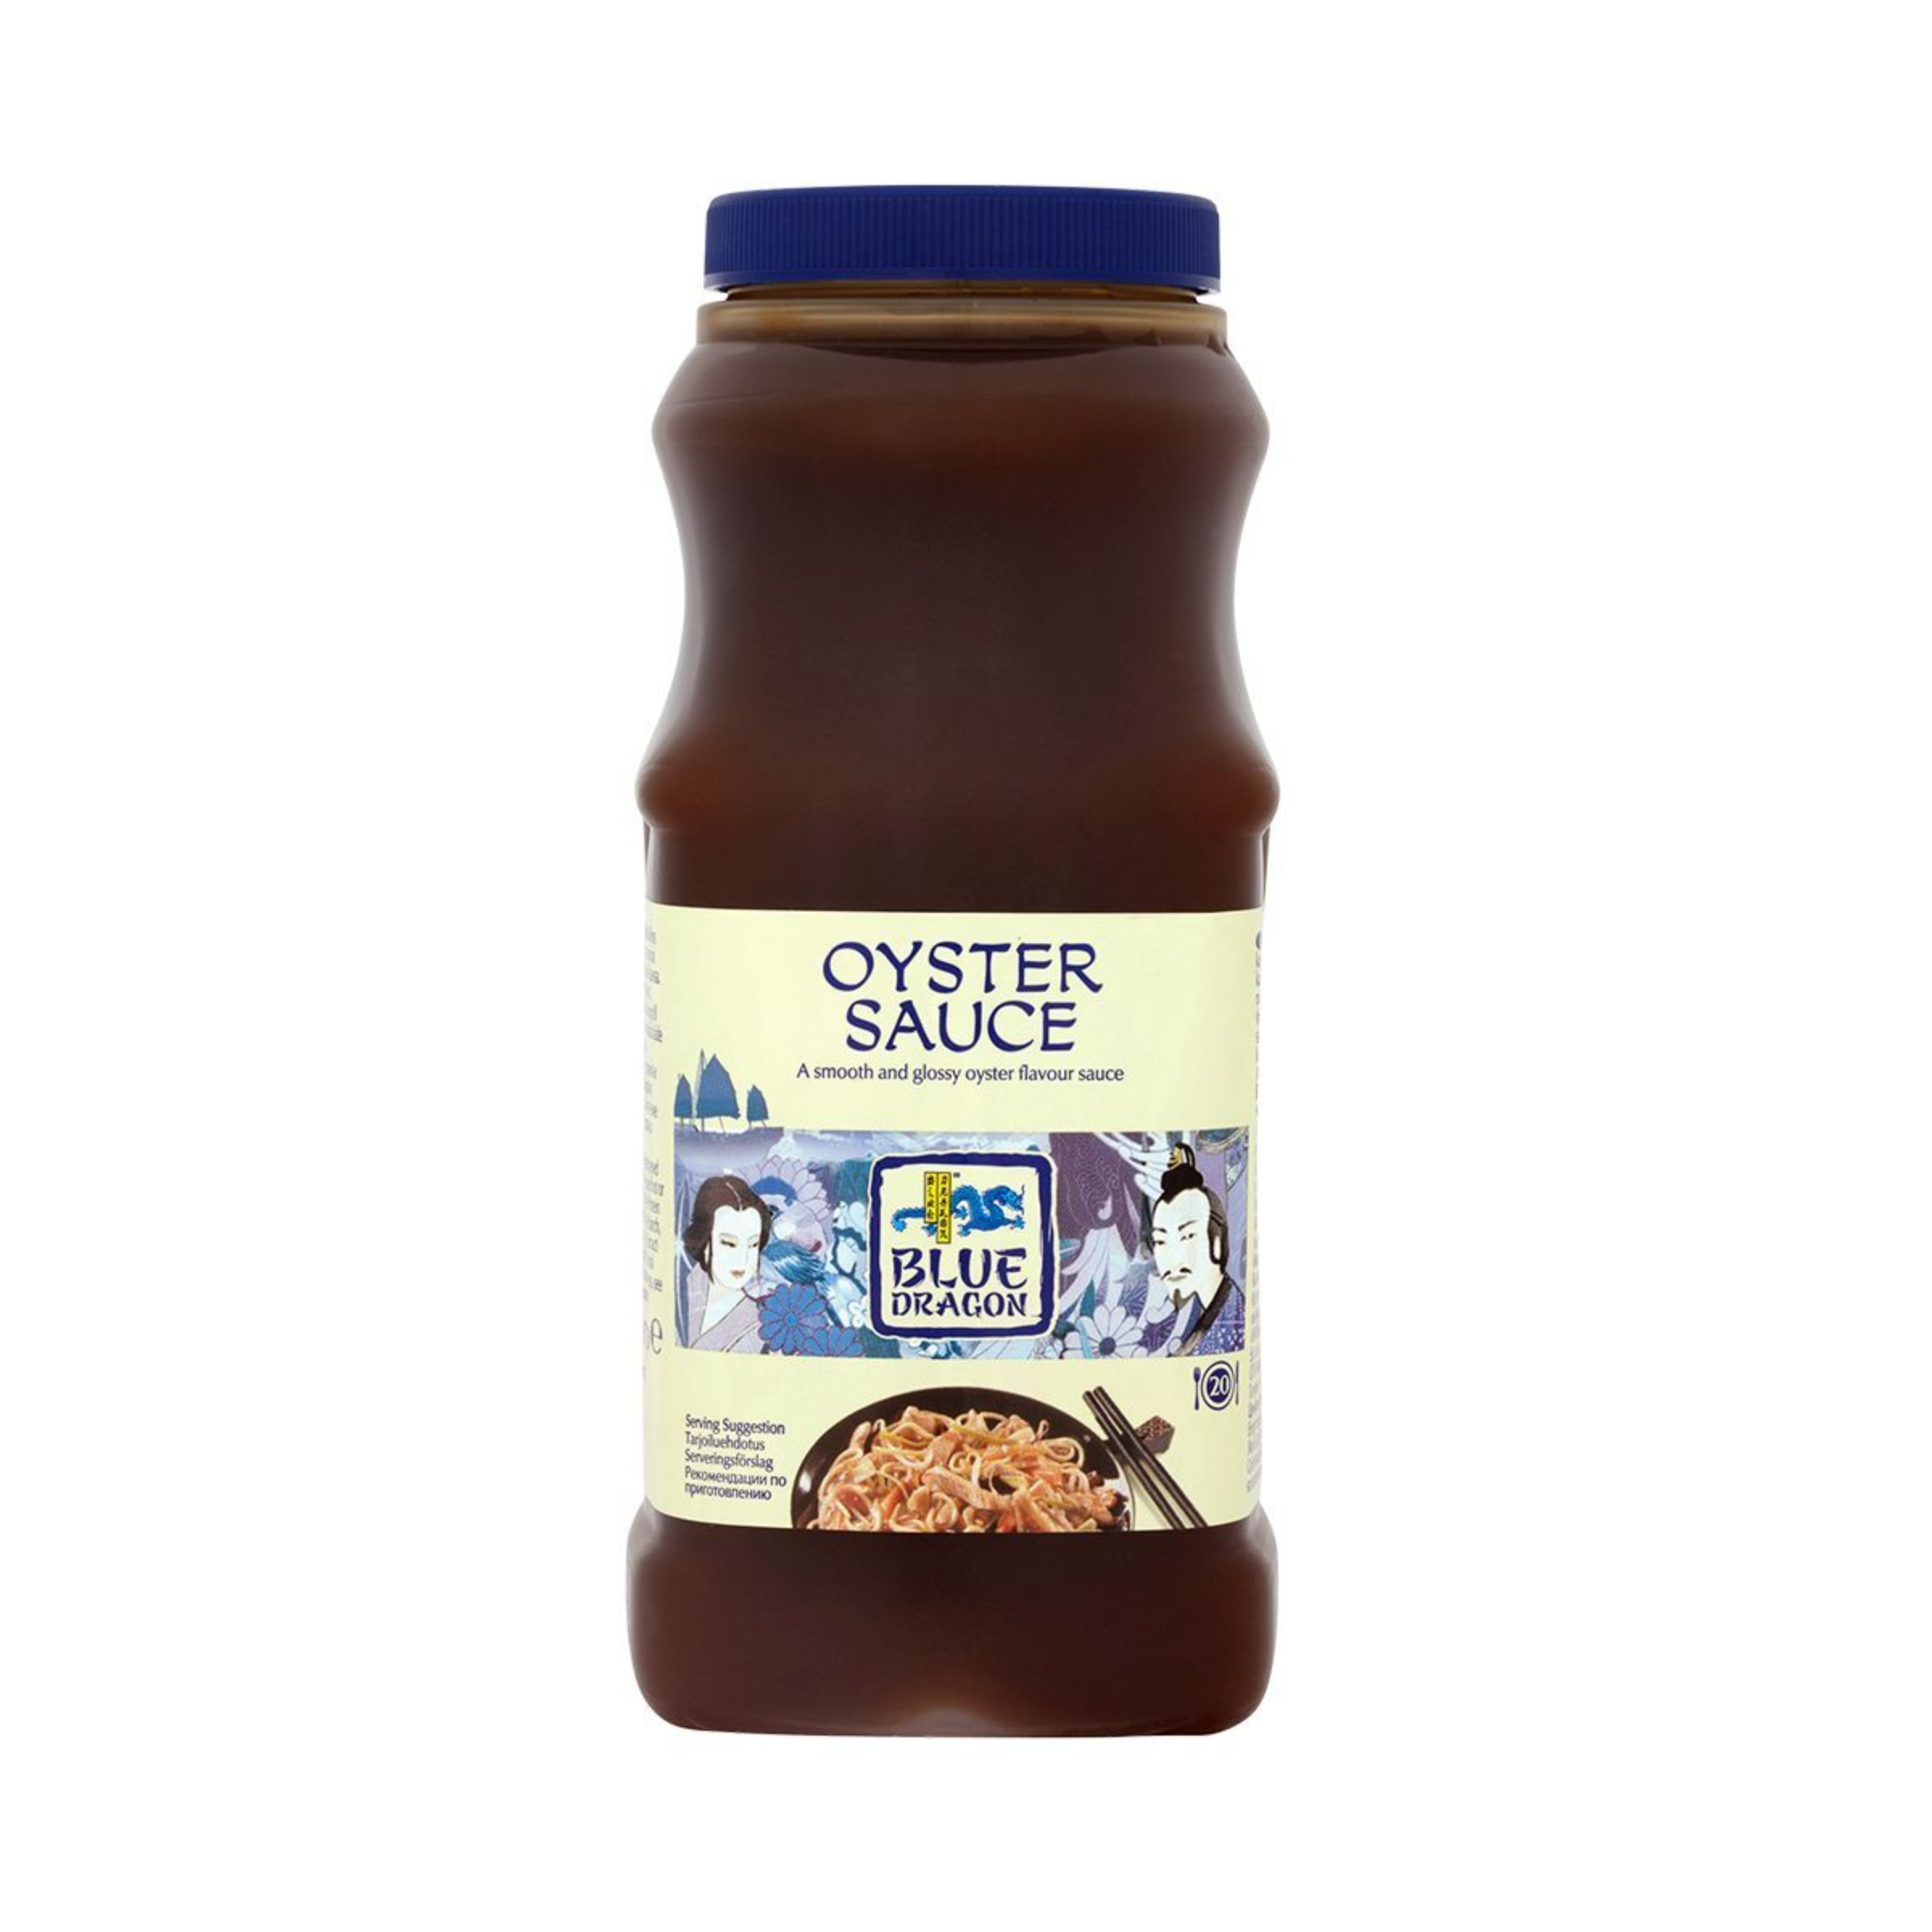 Blue Dragon Oyster Sauce 1x1ltr